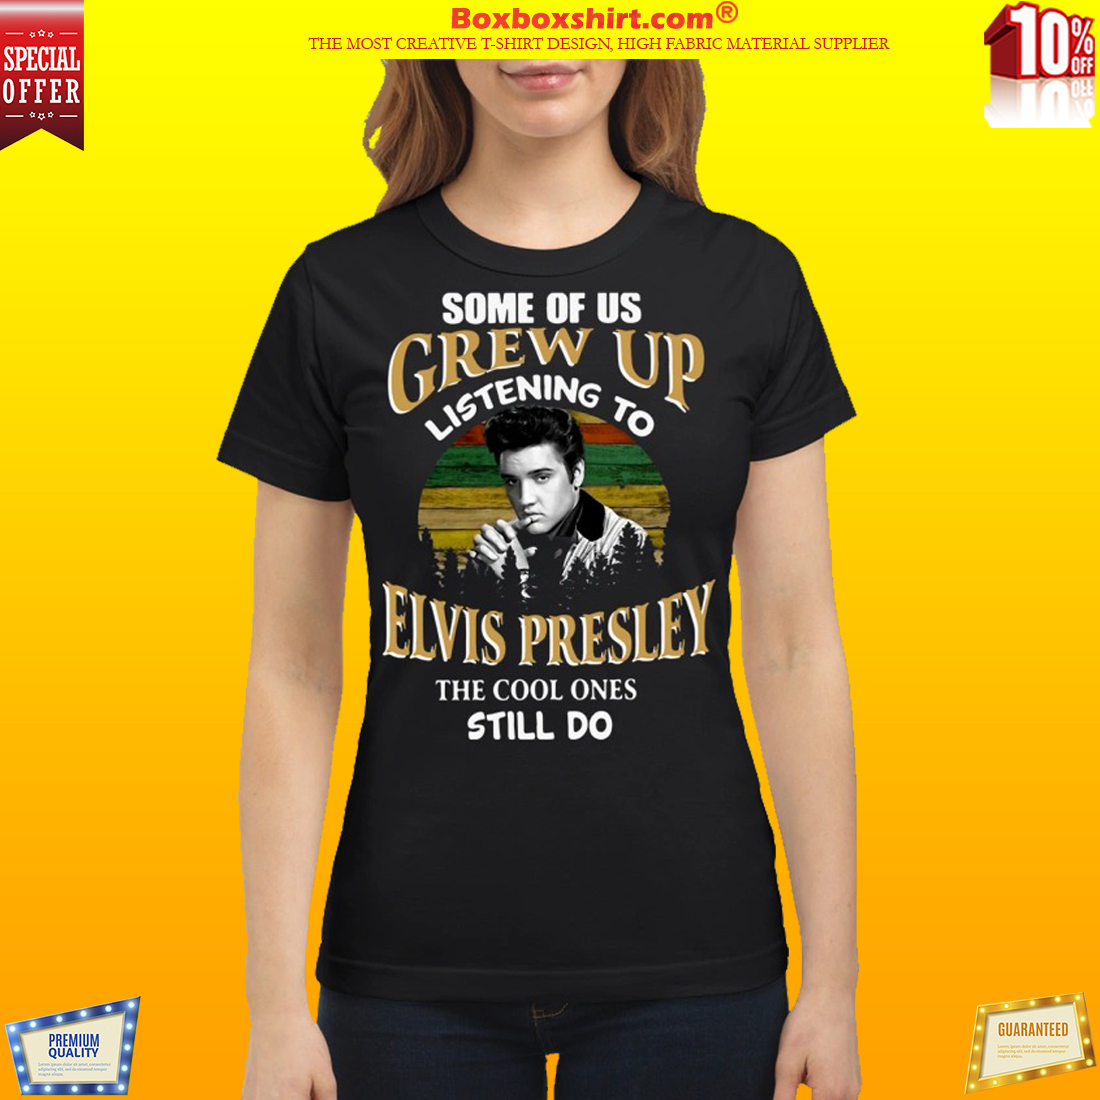 Some of us Grew up listening to Elvis Presley the cool ones still do classic shirt